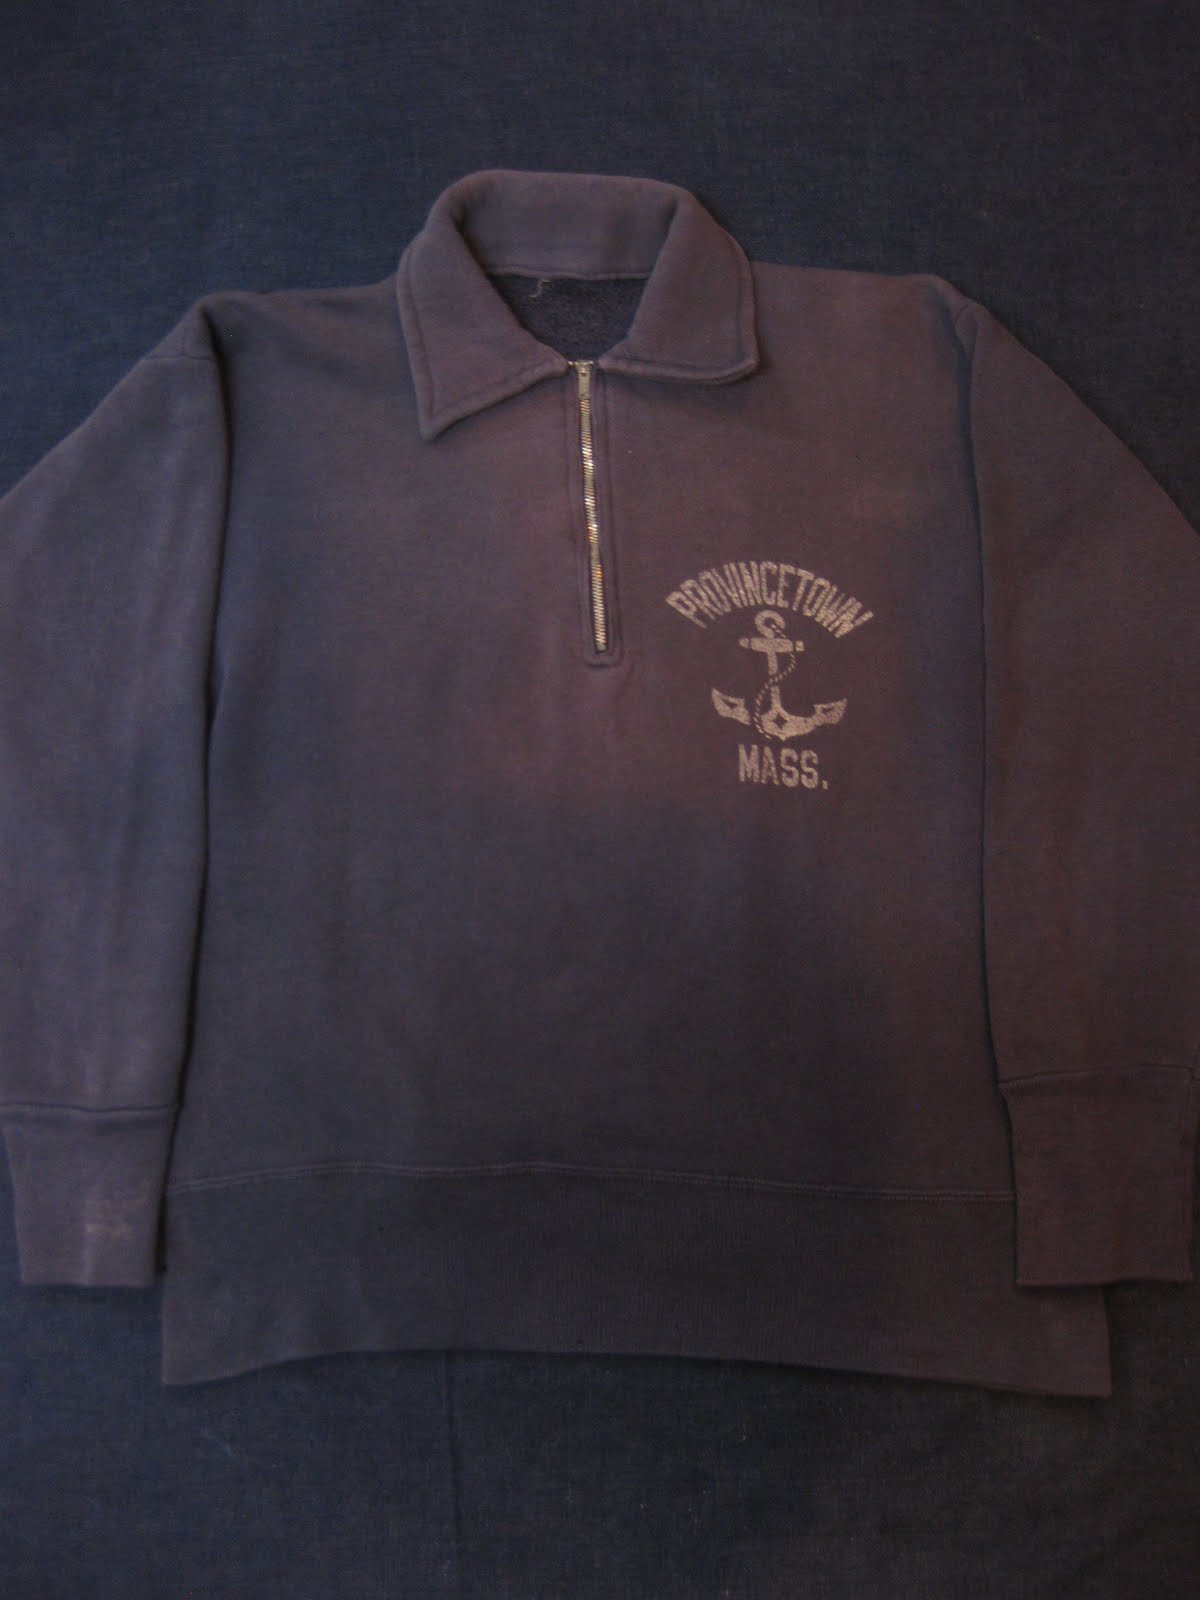 画像①               50's 襟付き half zip.               SWEAT SHIRTS               P-TOWN U.S.NAVY